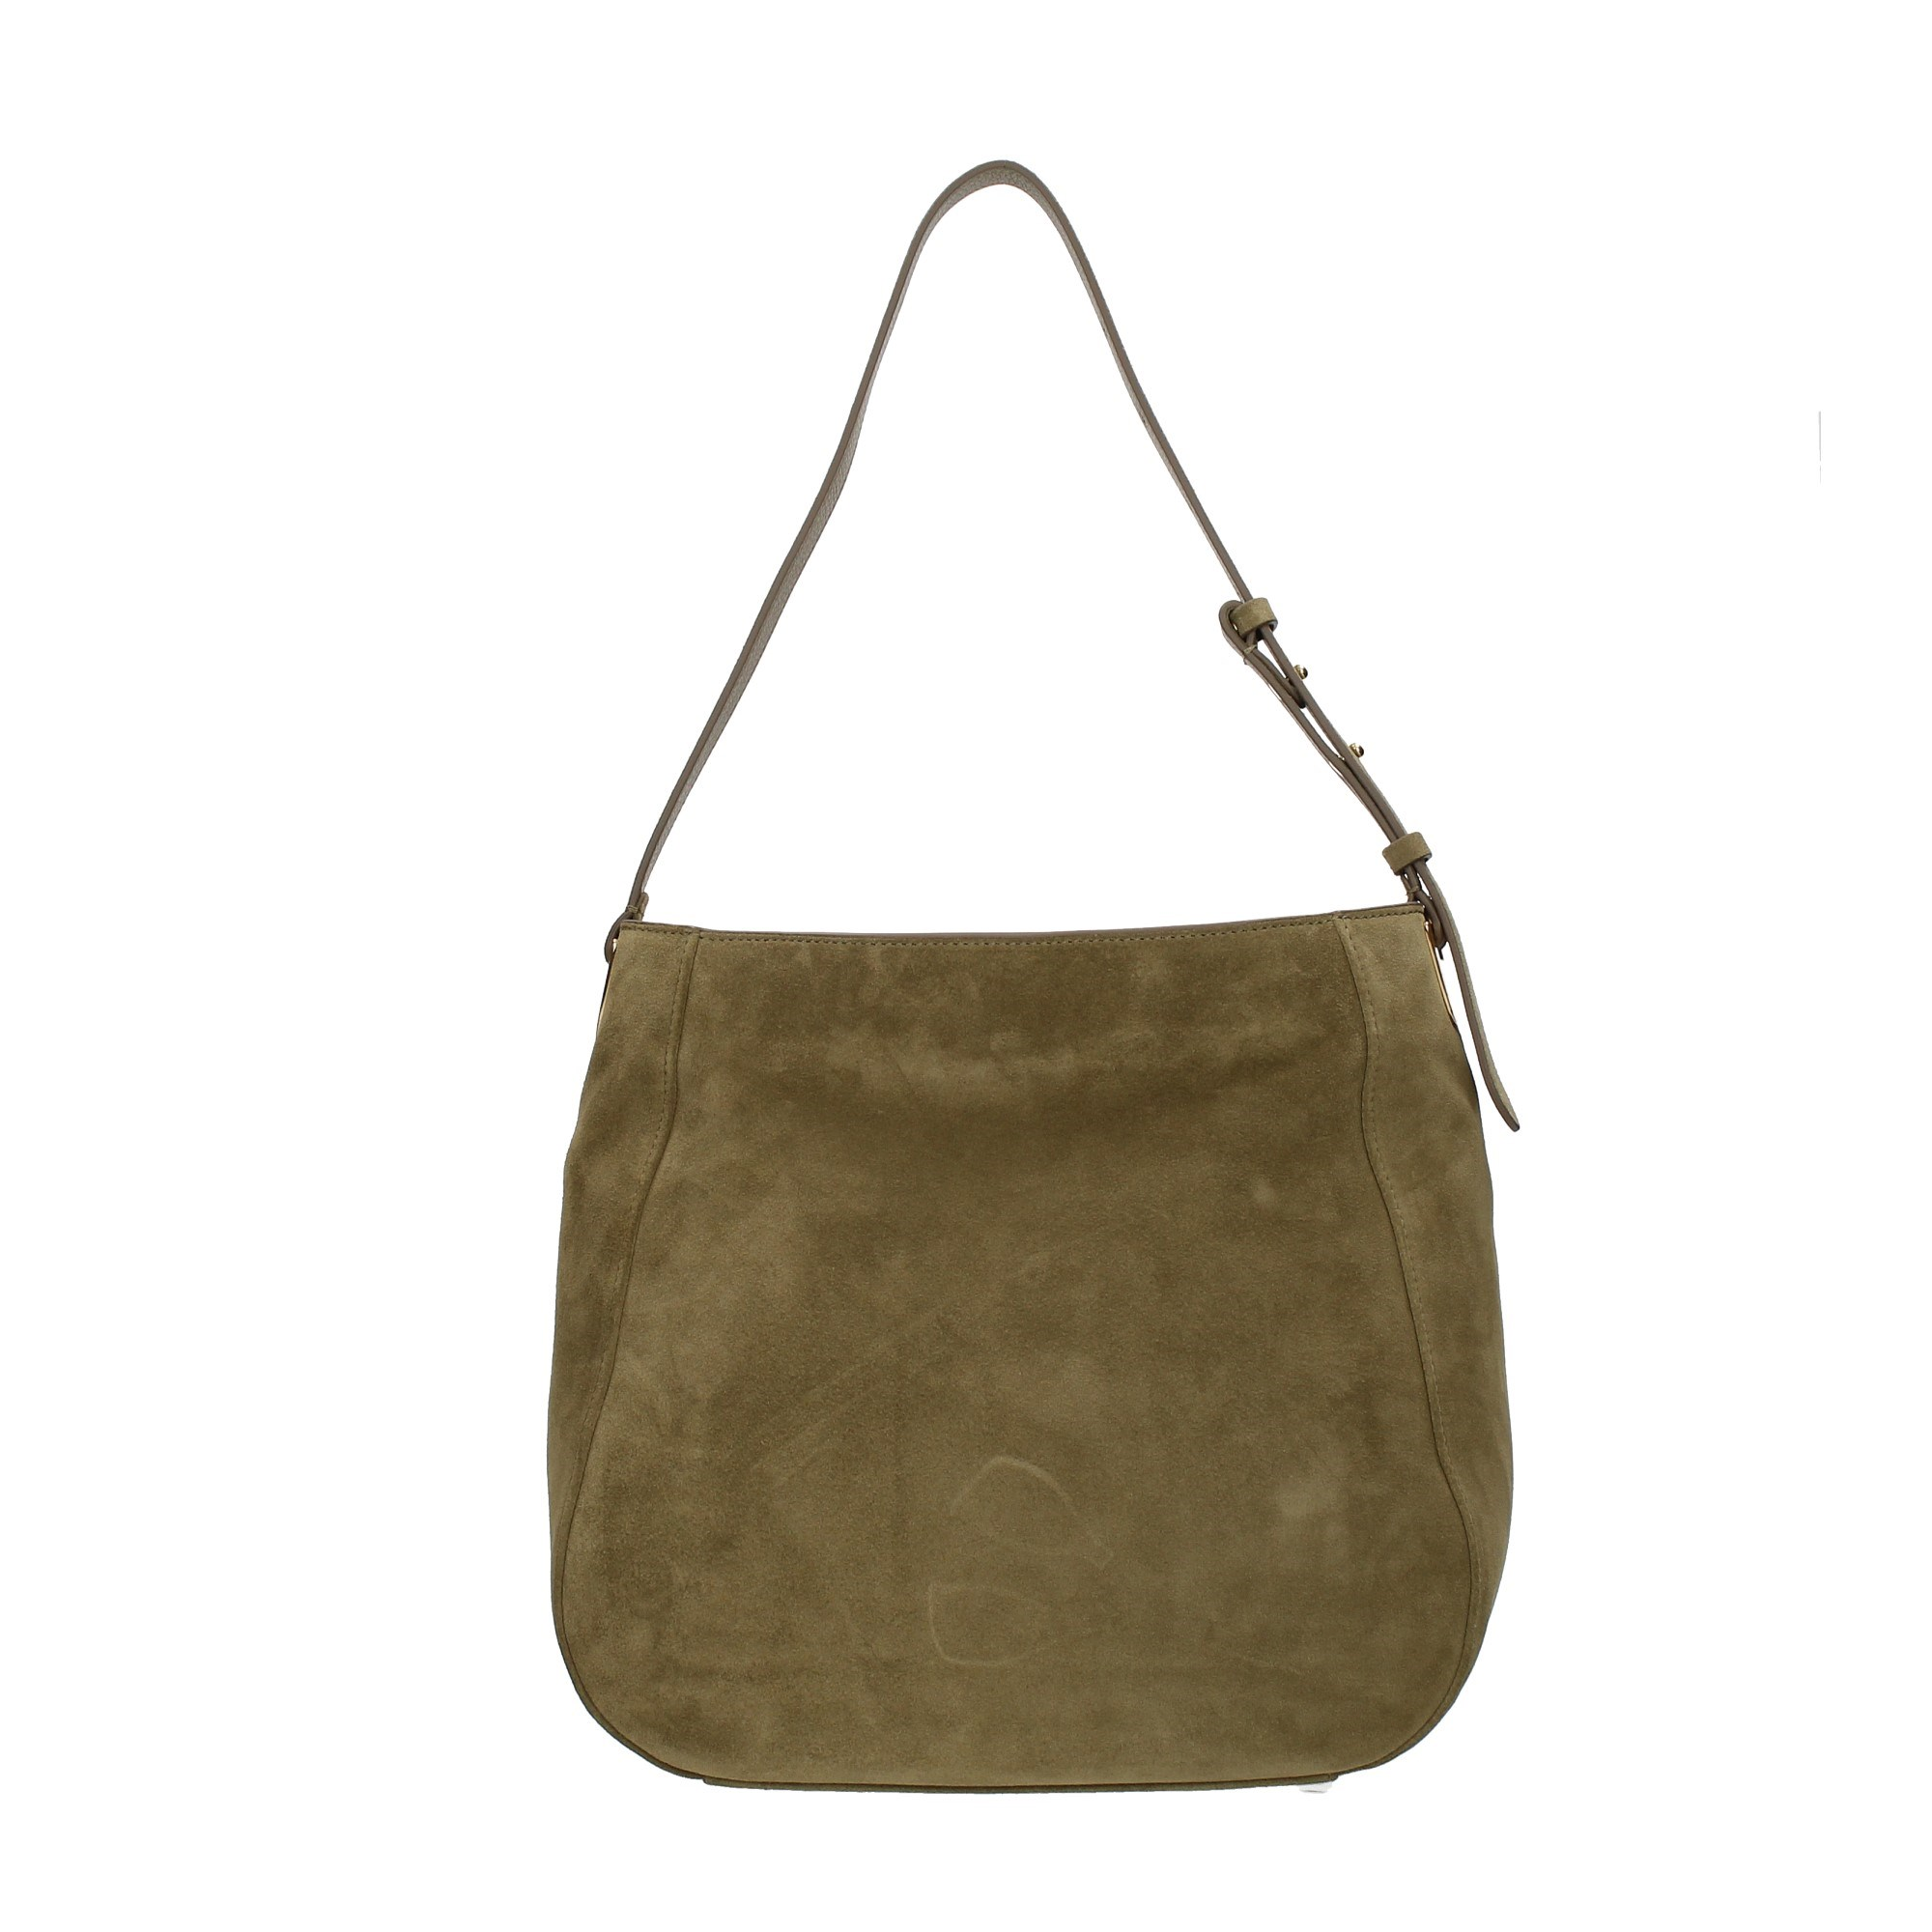 Coccinelle Accessories Women Shoulder Bags Green H62 130101